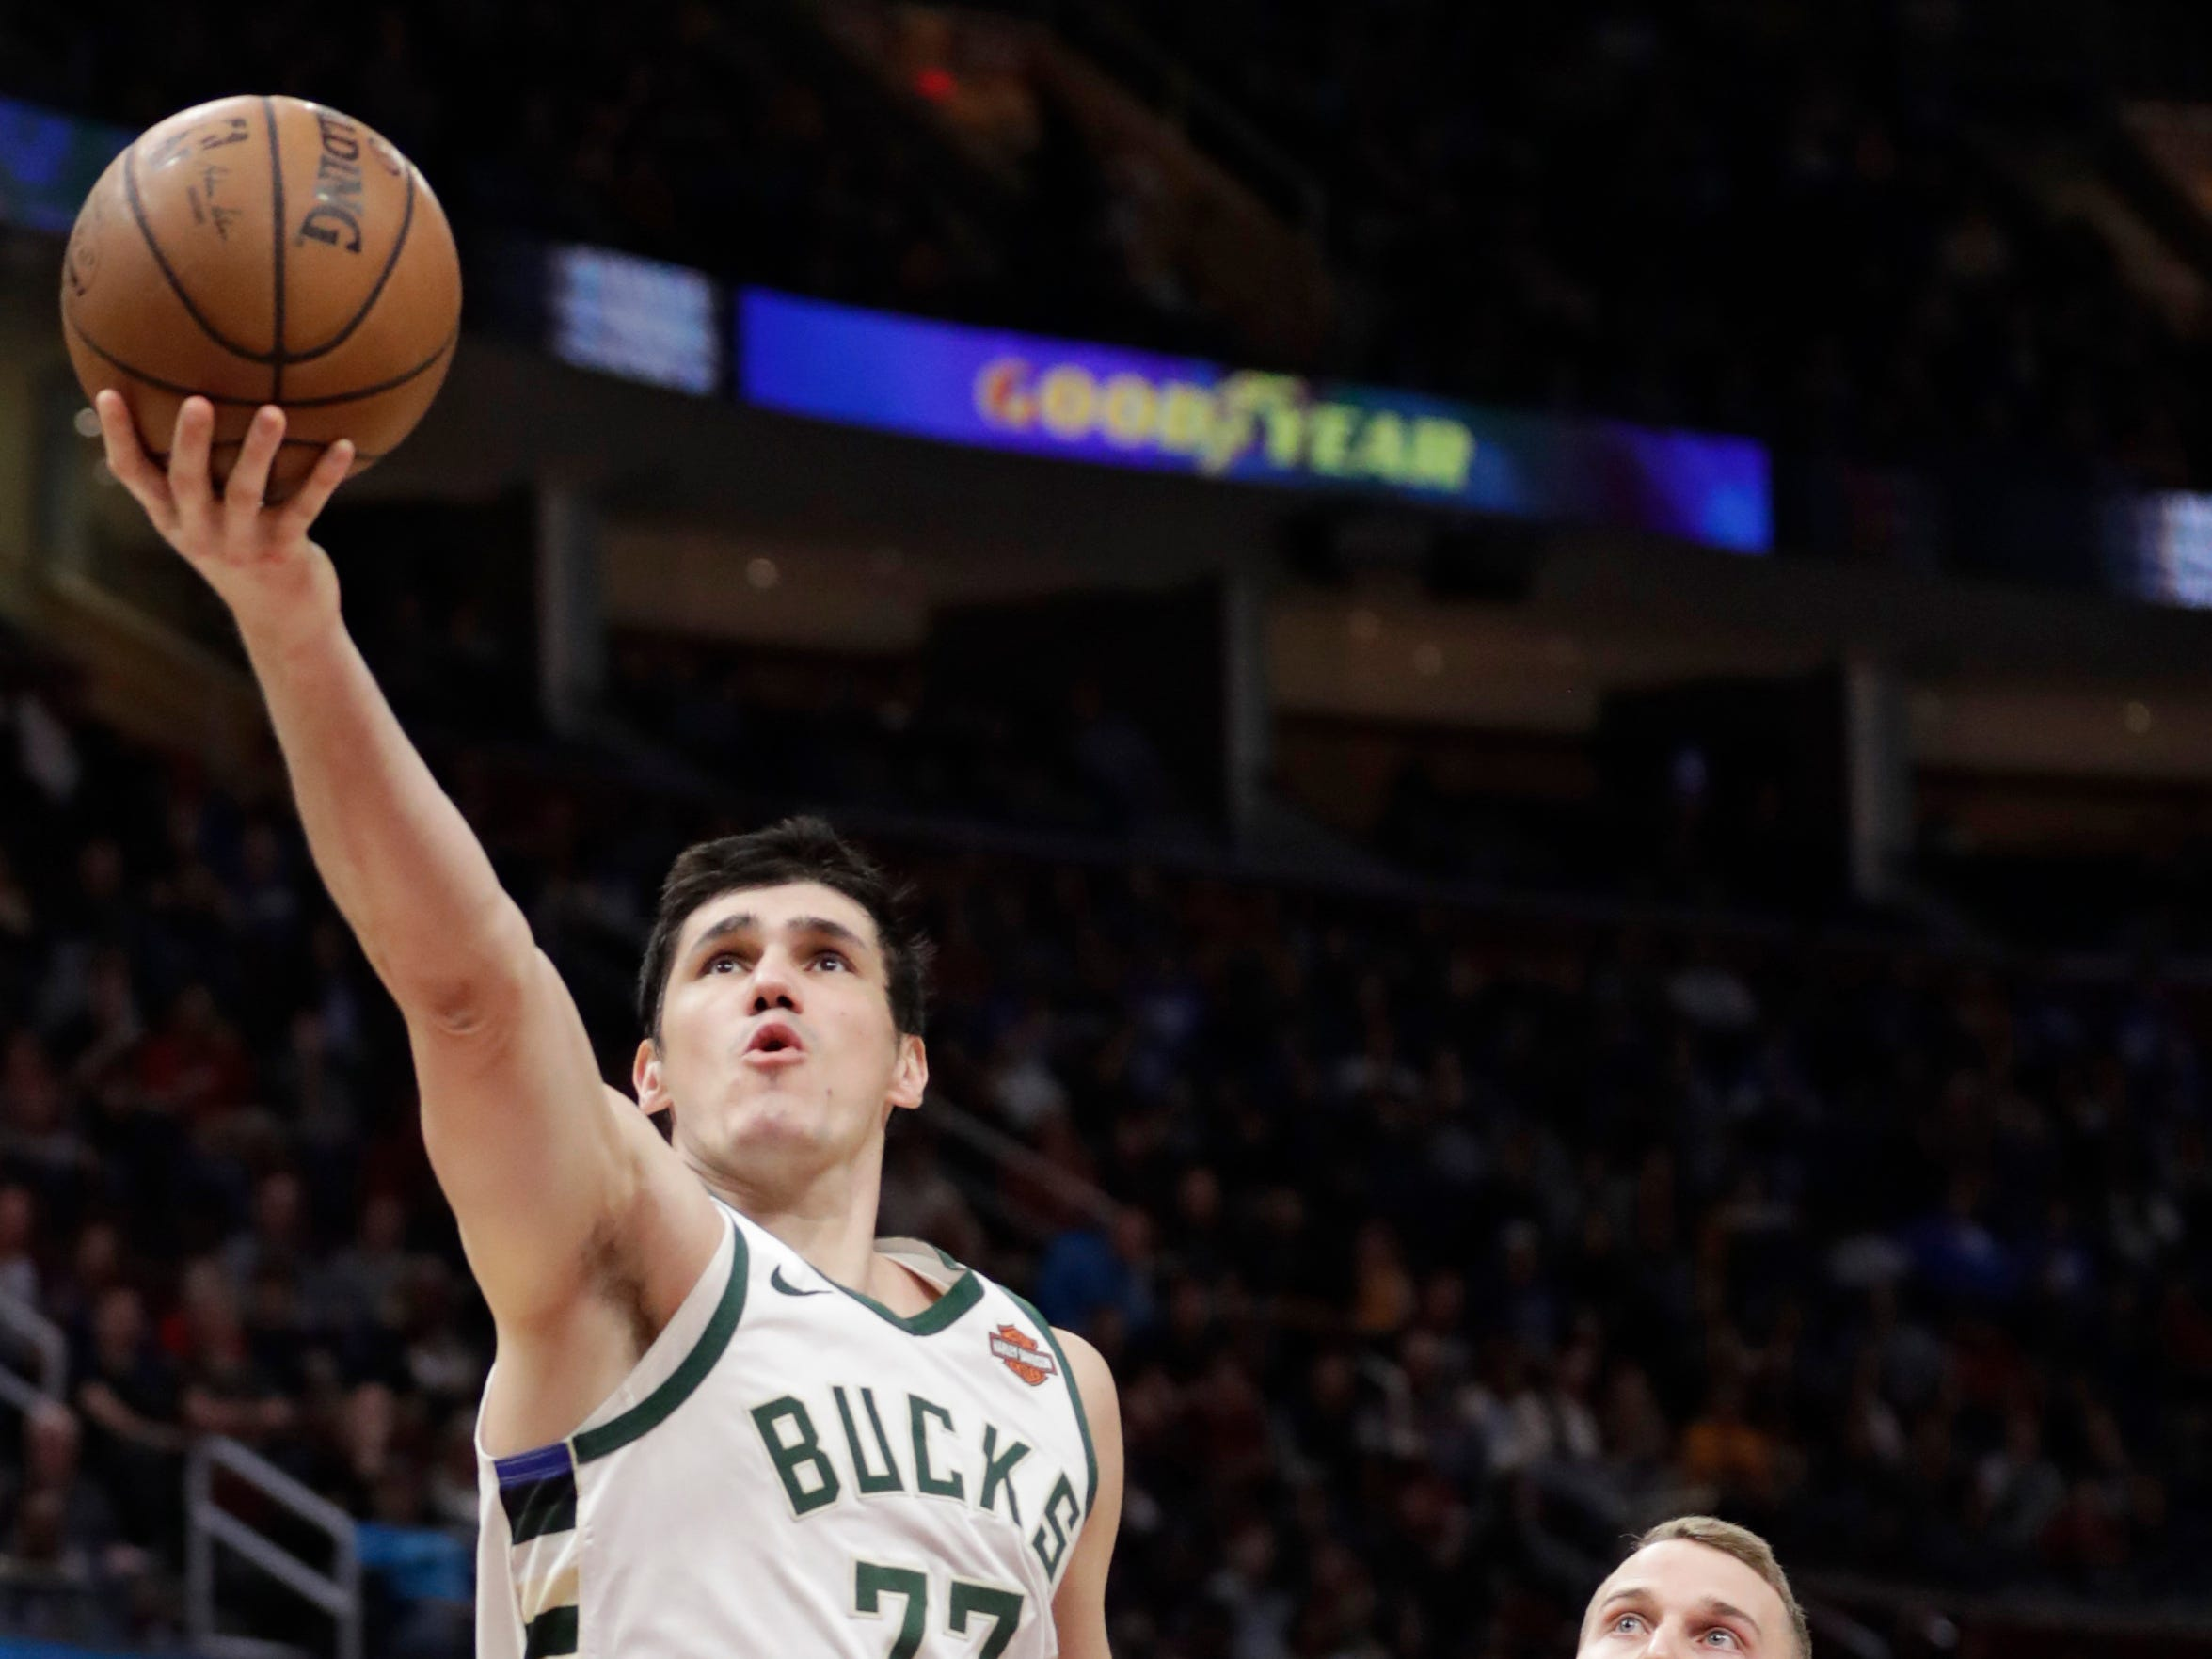 Bucks forward Ersan Ilyasova goes in for an underhanded layup in front of Nik Stauskas of the Cavaliers during the first half.